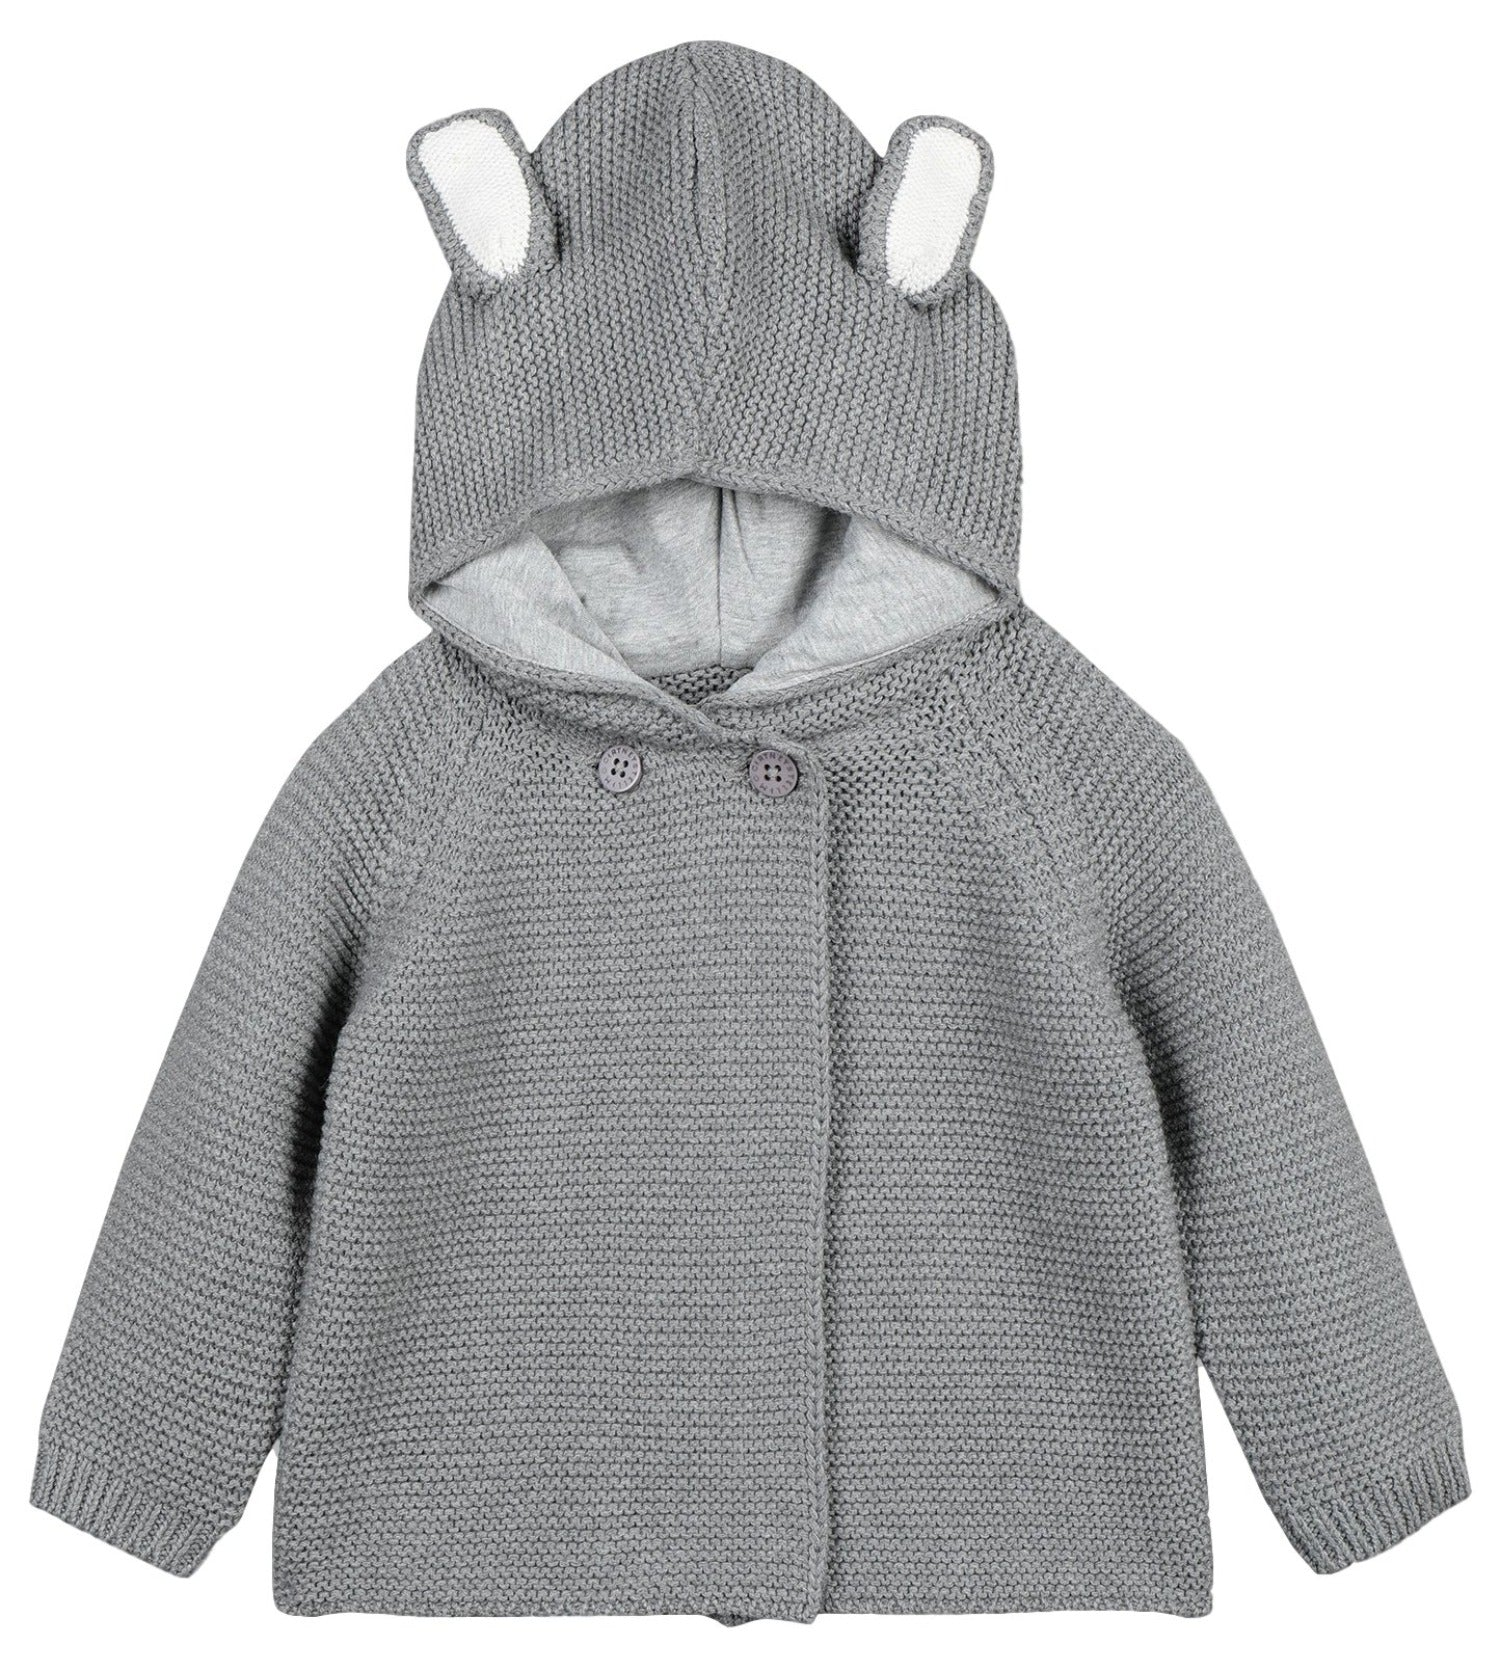 Stella McCartney Baby Bunny Cardigan